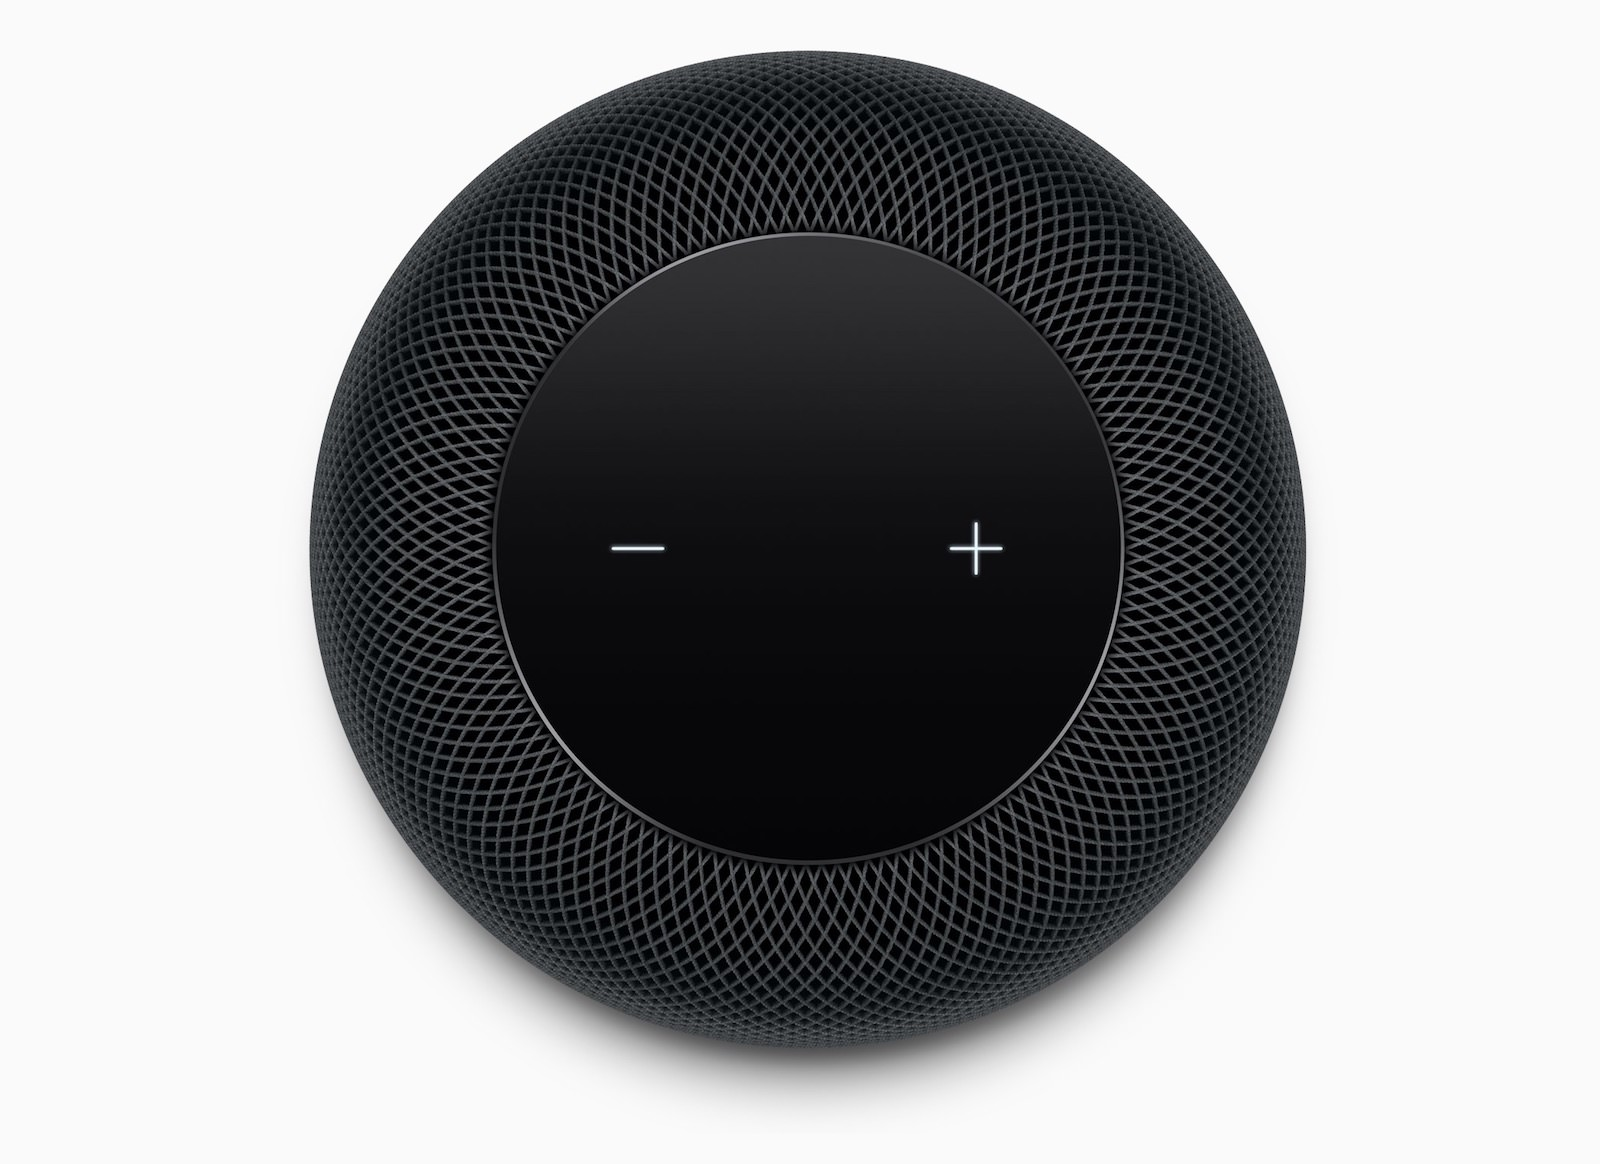 Homepod Top